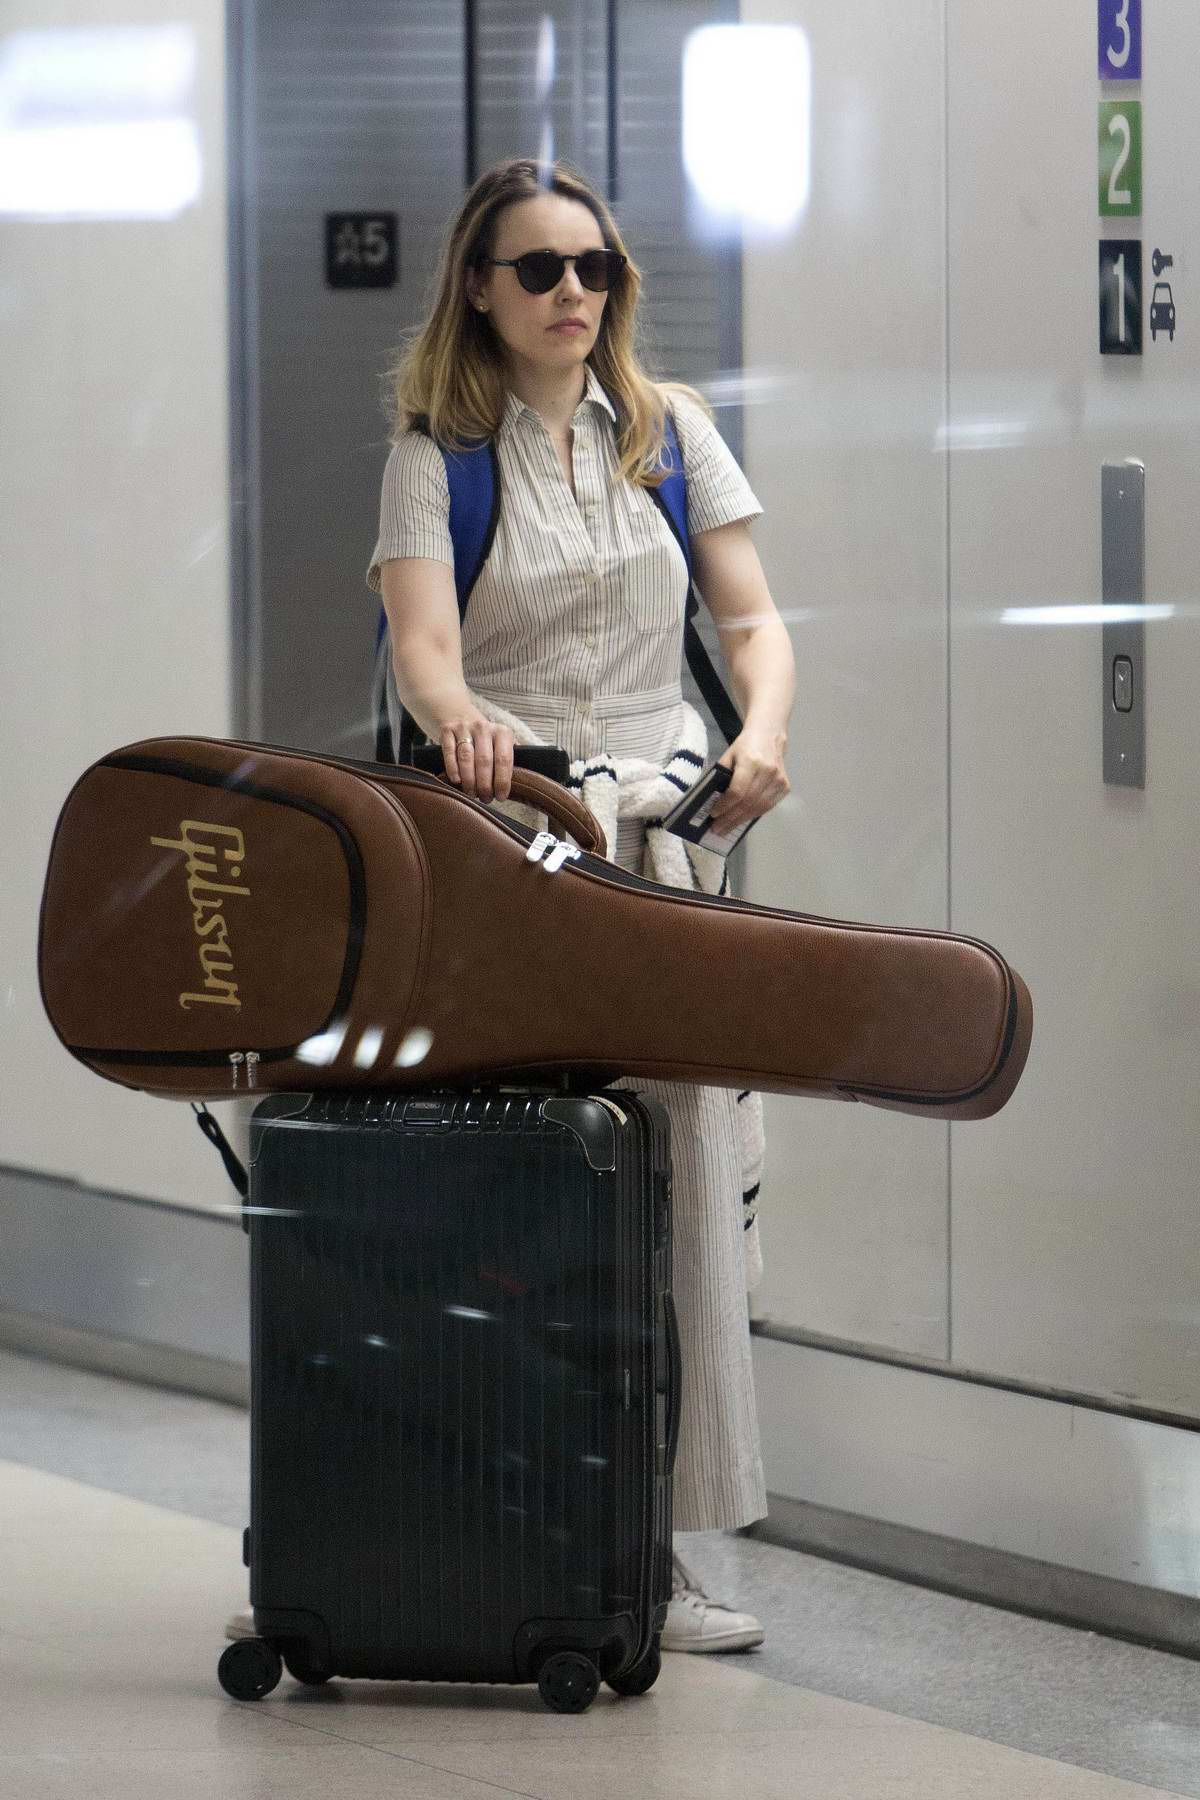 Rachel McAdams spotted in a striped jumpsuit while carrying a Gibson guitar along with her luggage as she touches down in Toronto, Canada